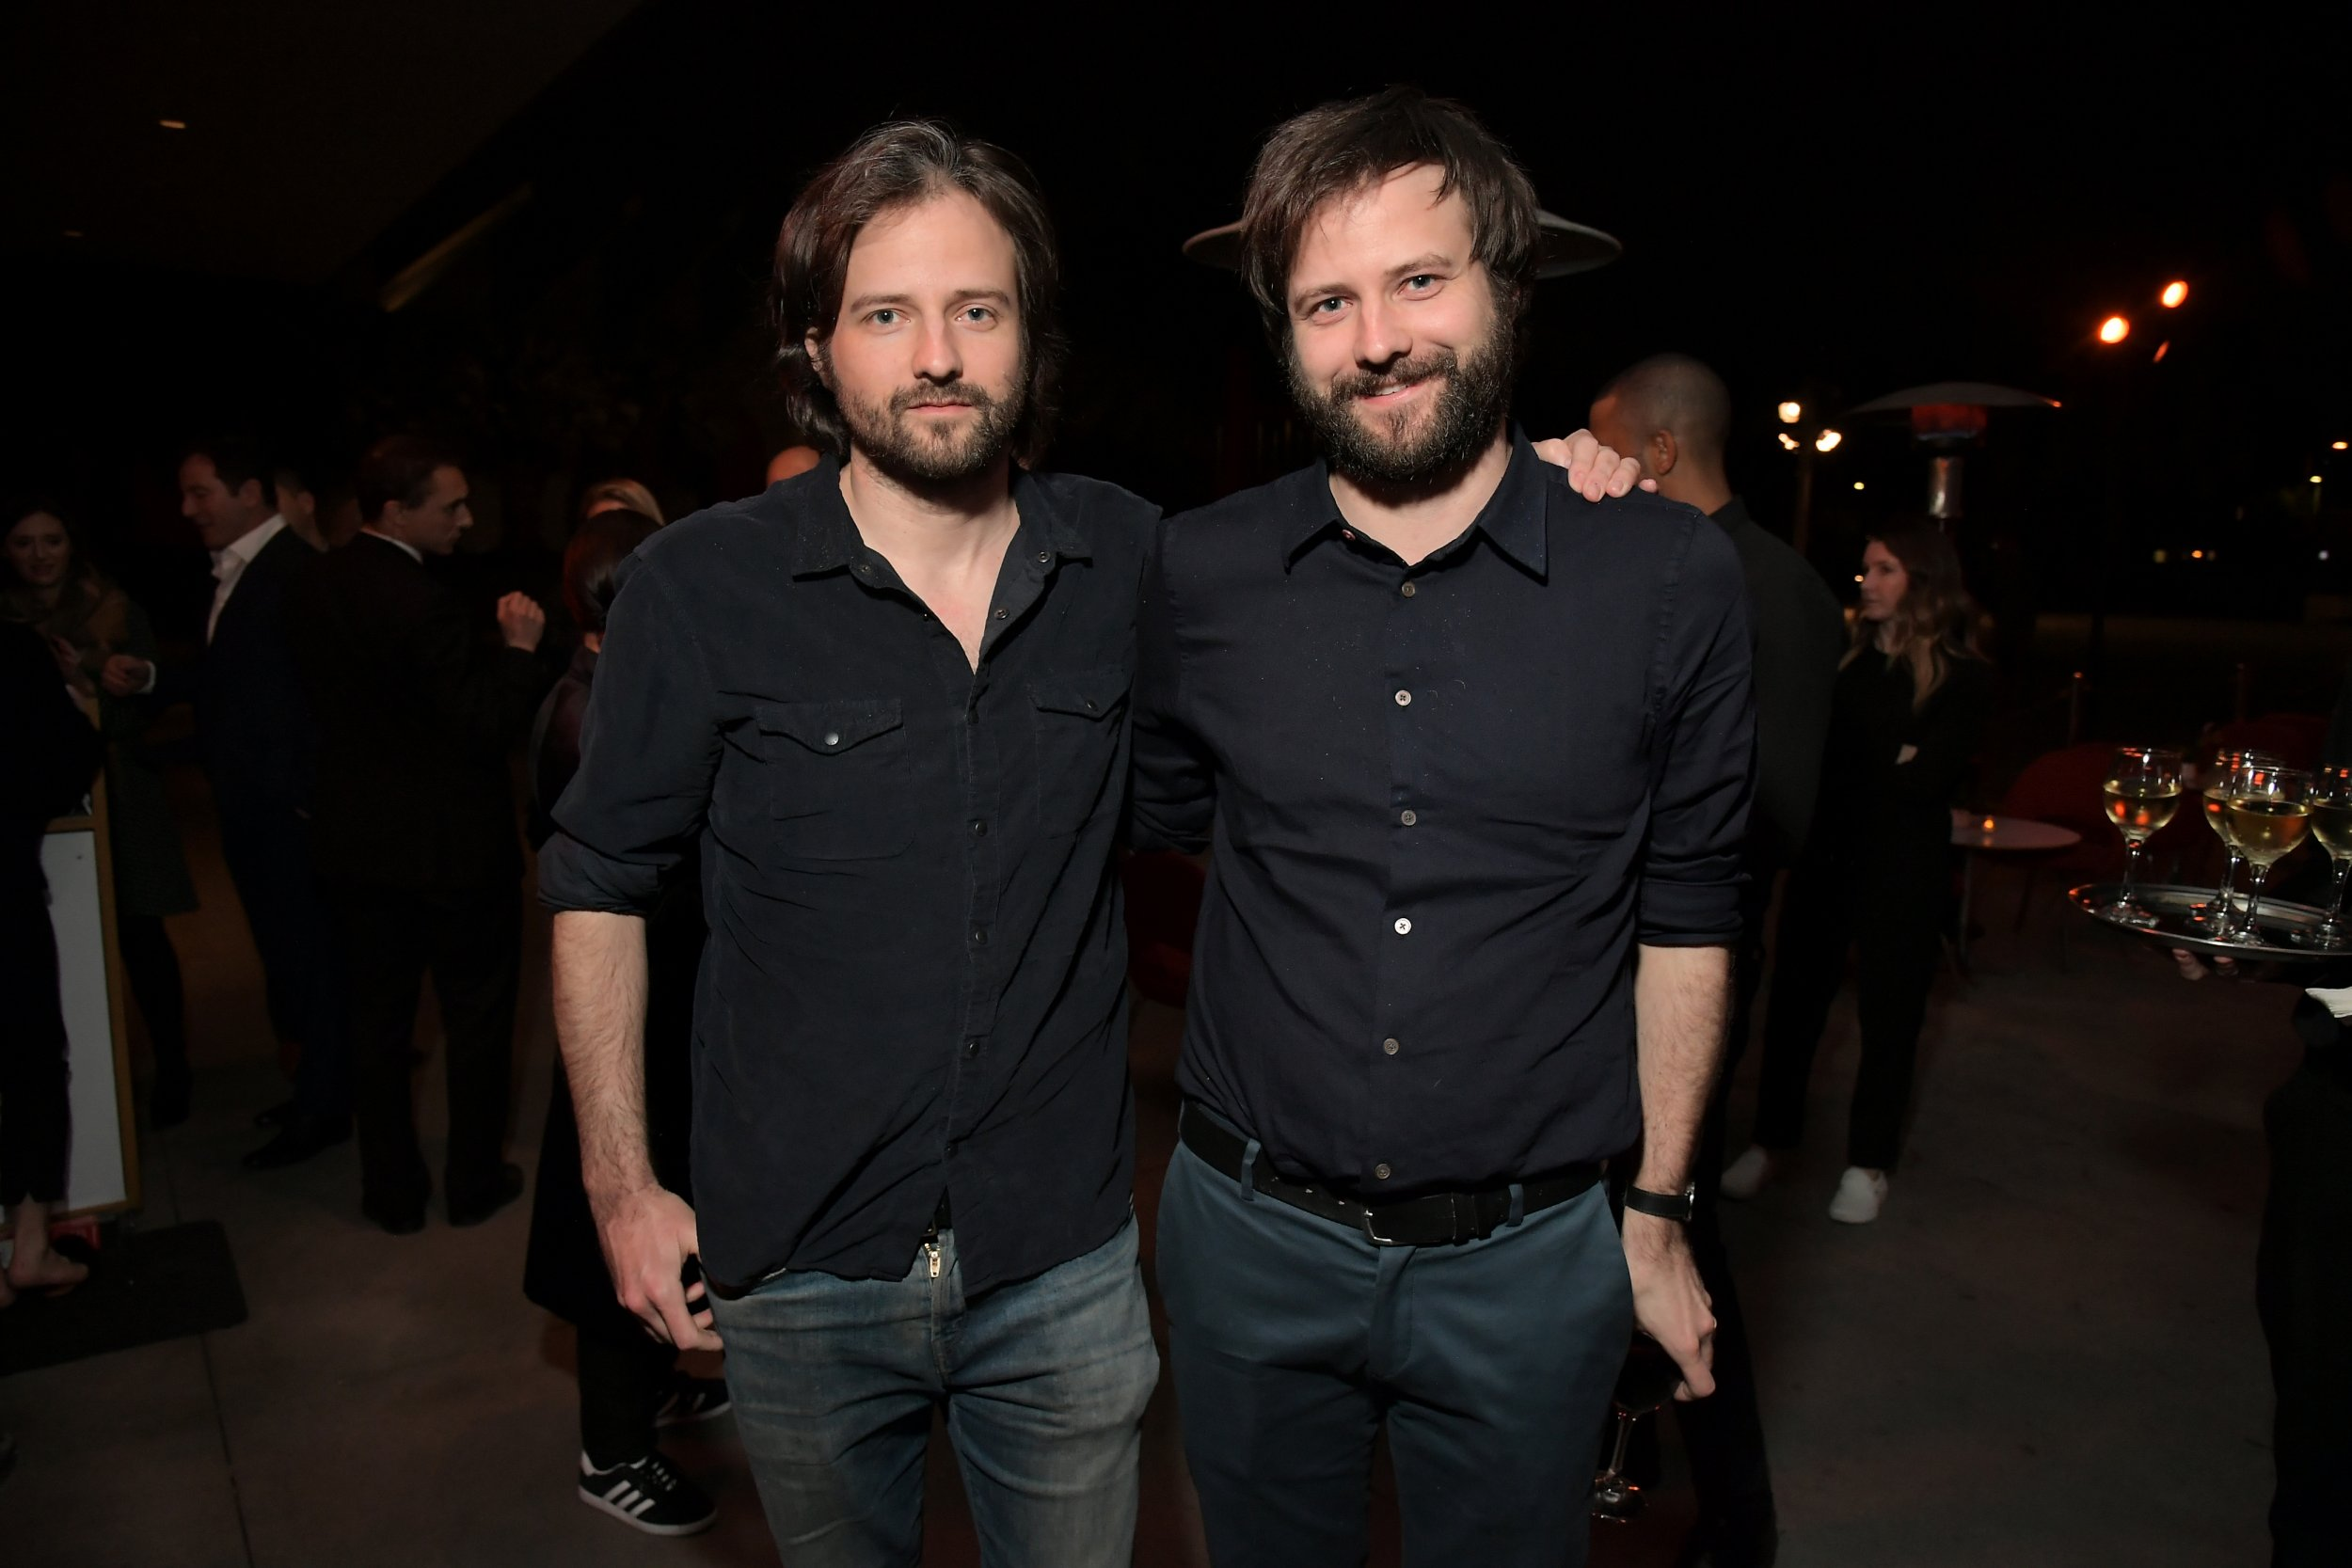 'Stranger Things' Creators Headed to Trial